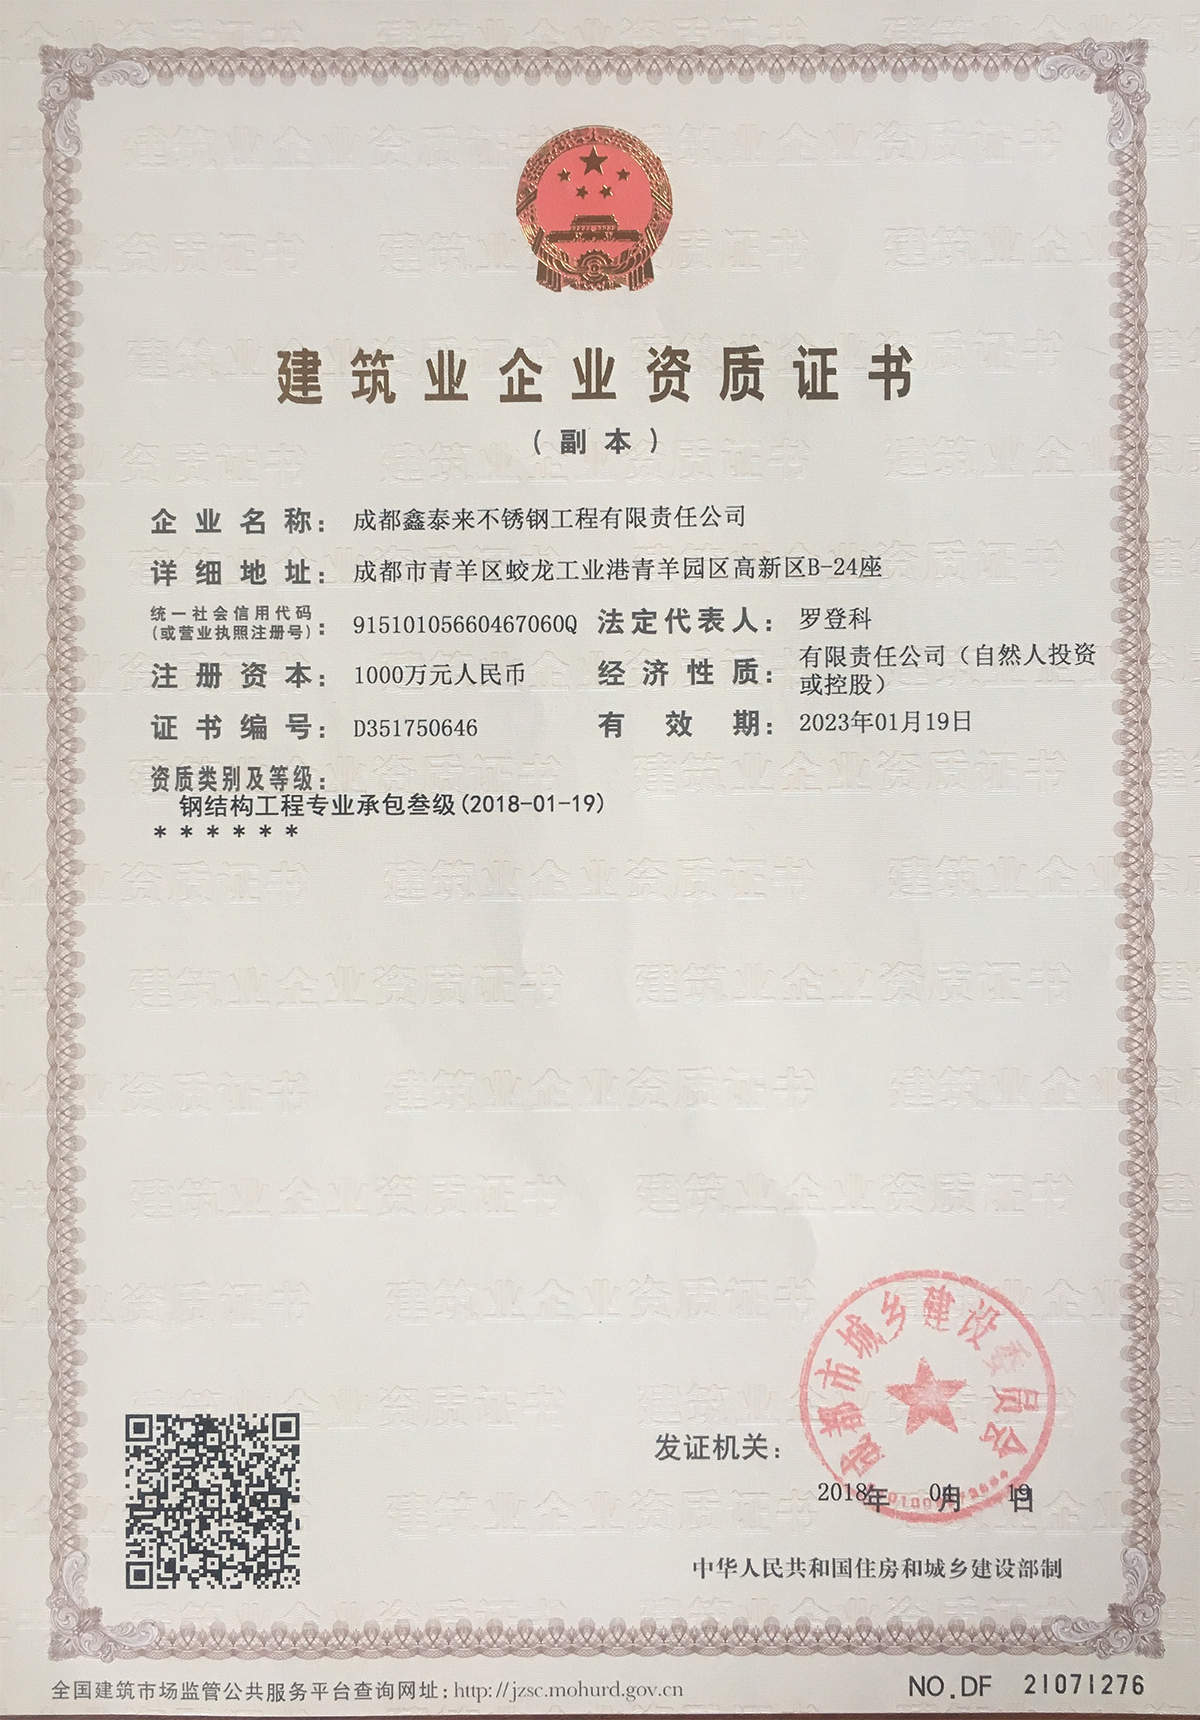 The company has obtained the qualification of grade iii stee